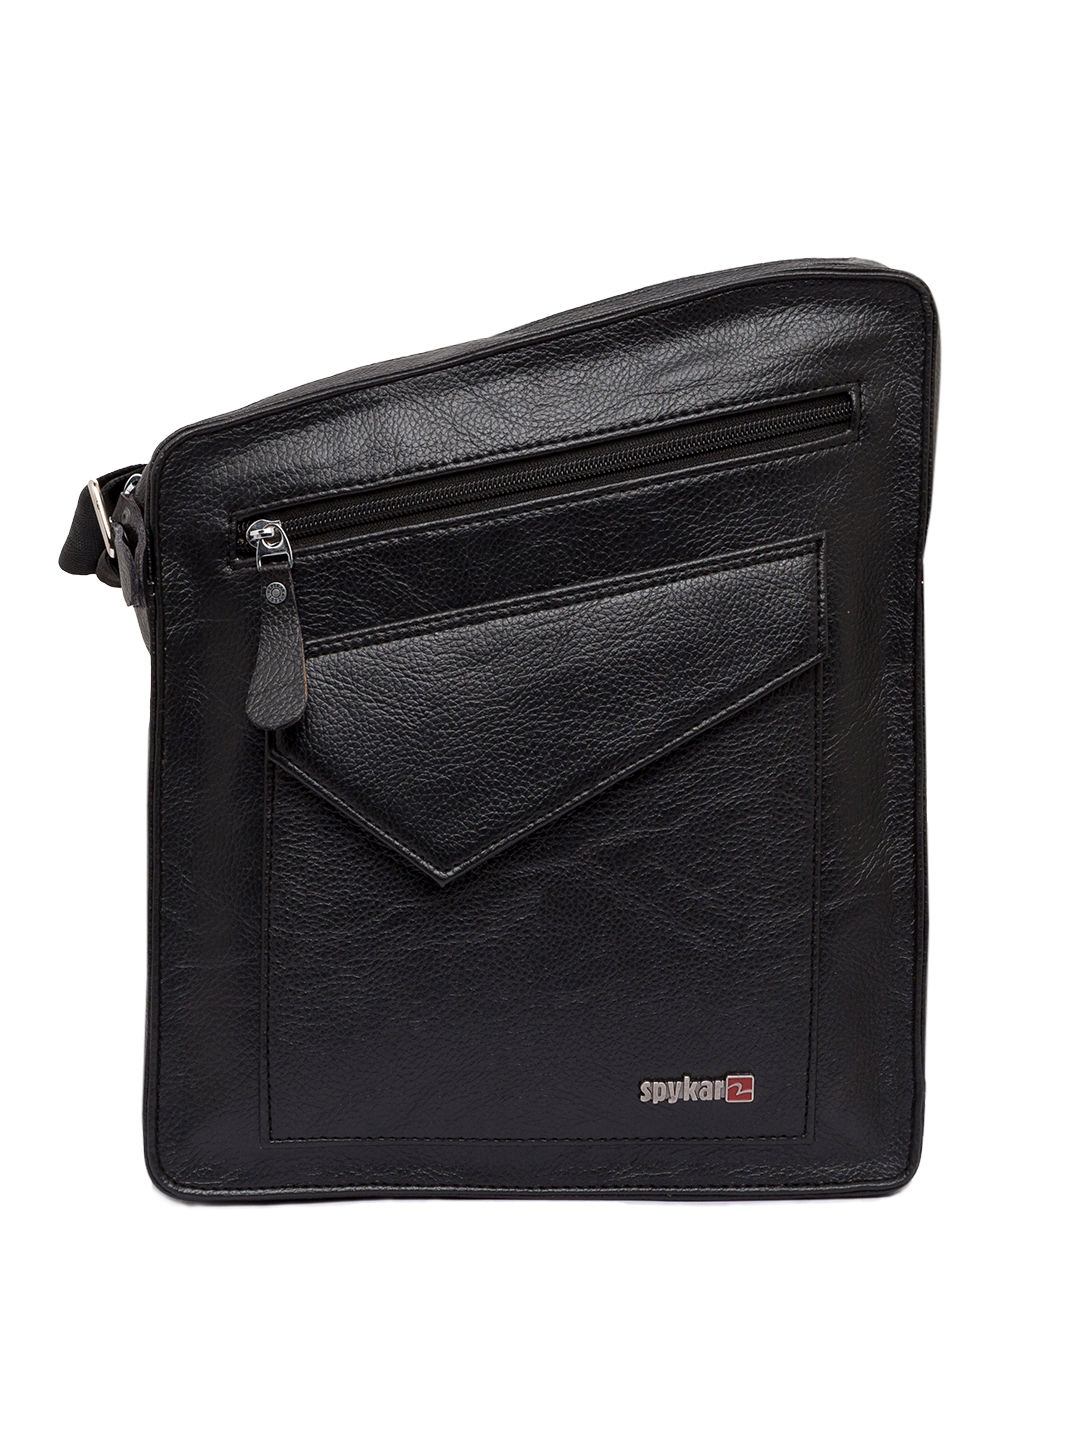 Spykar Black Genuine Leather Messenger Bag